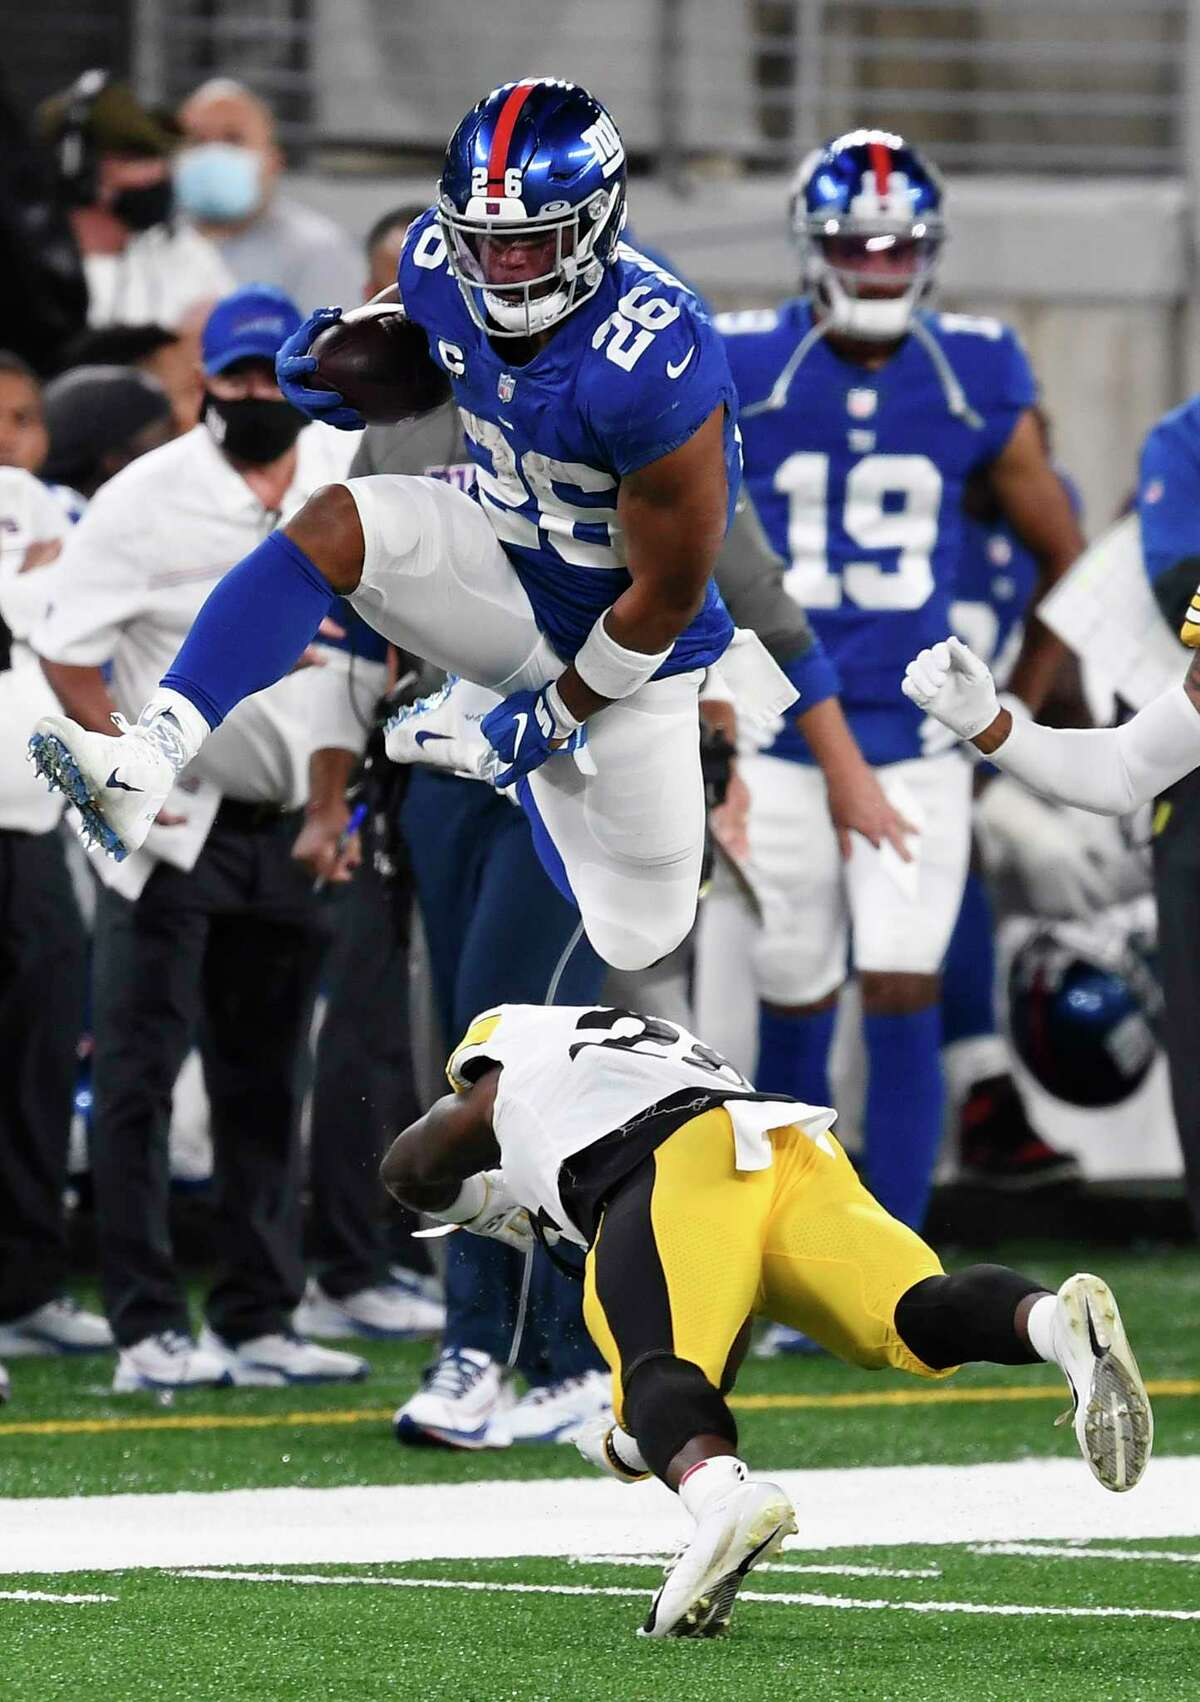 EAST RUTHERFORD, NEW JERSEY - SEPTEMBER 14: Saquon Barkley #26 of the New York Giants leaps over Mike Hilton #28 of the Pittsburgh Steelers defends during the first half at MetLife Stadium on September 14, 2020 in East Rutherford, New Jersey. (Photo by Sarah Stier/Getty Images)